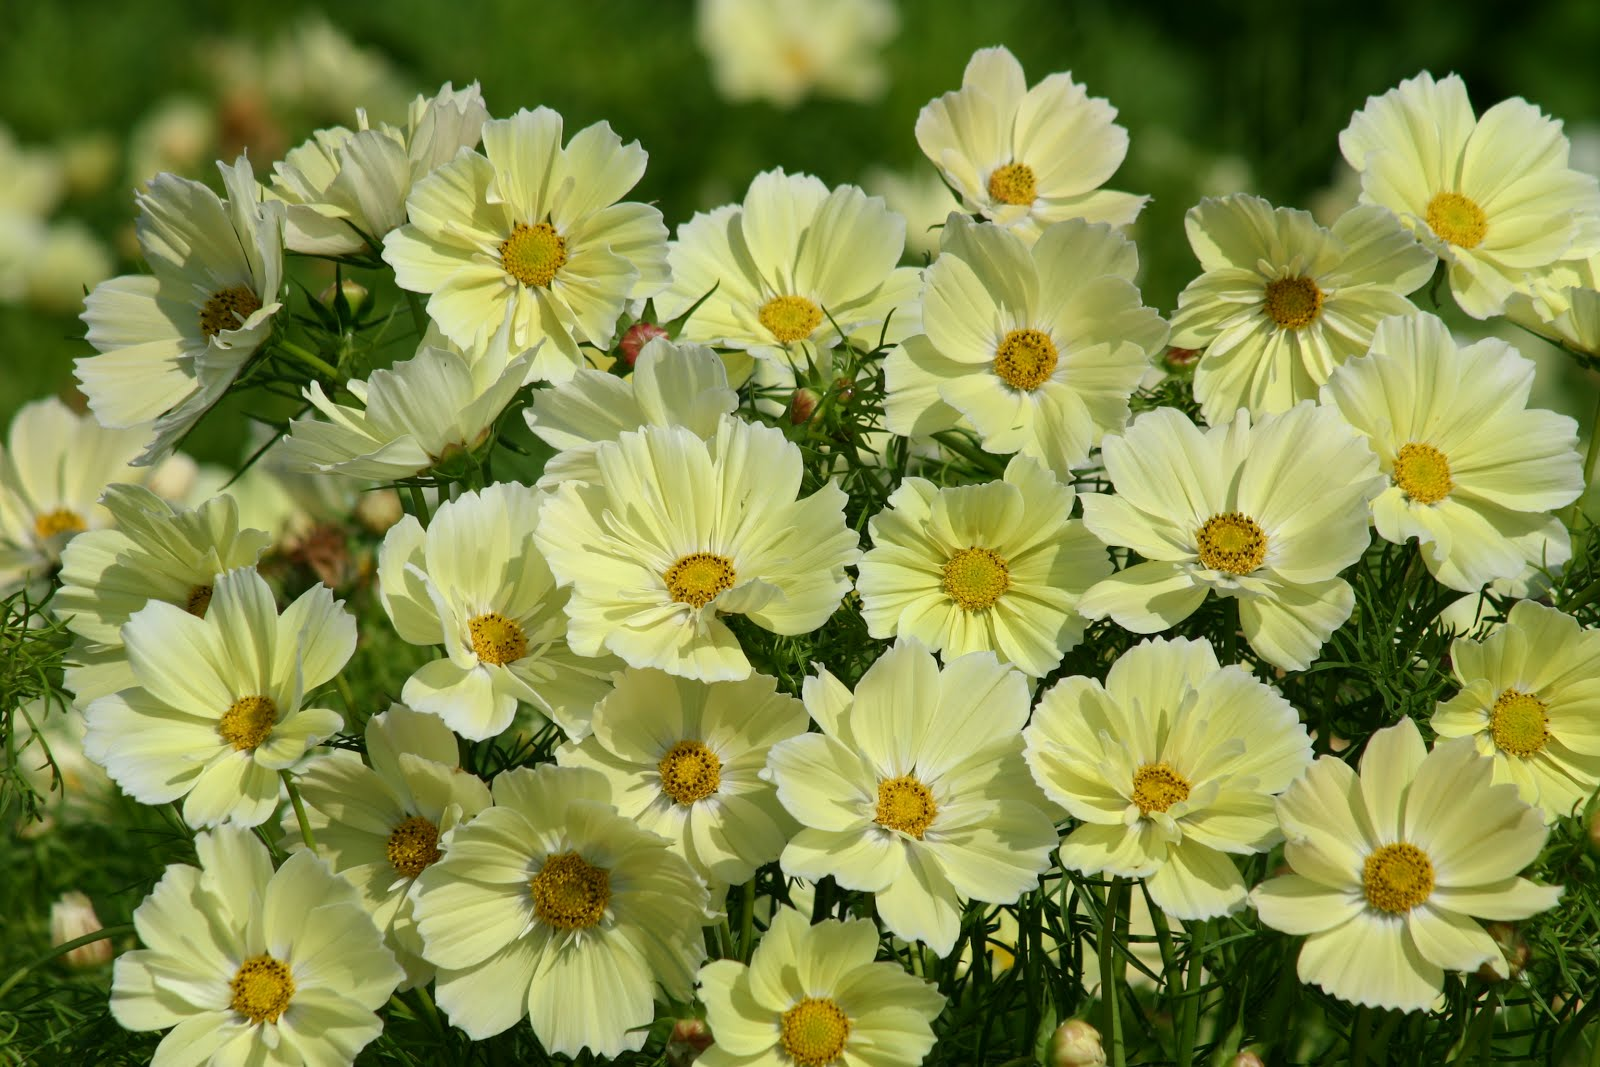 Gardening in vermont perennials and annuals new and unusual xanthos cosmos izmirmasajfo